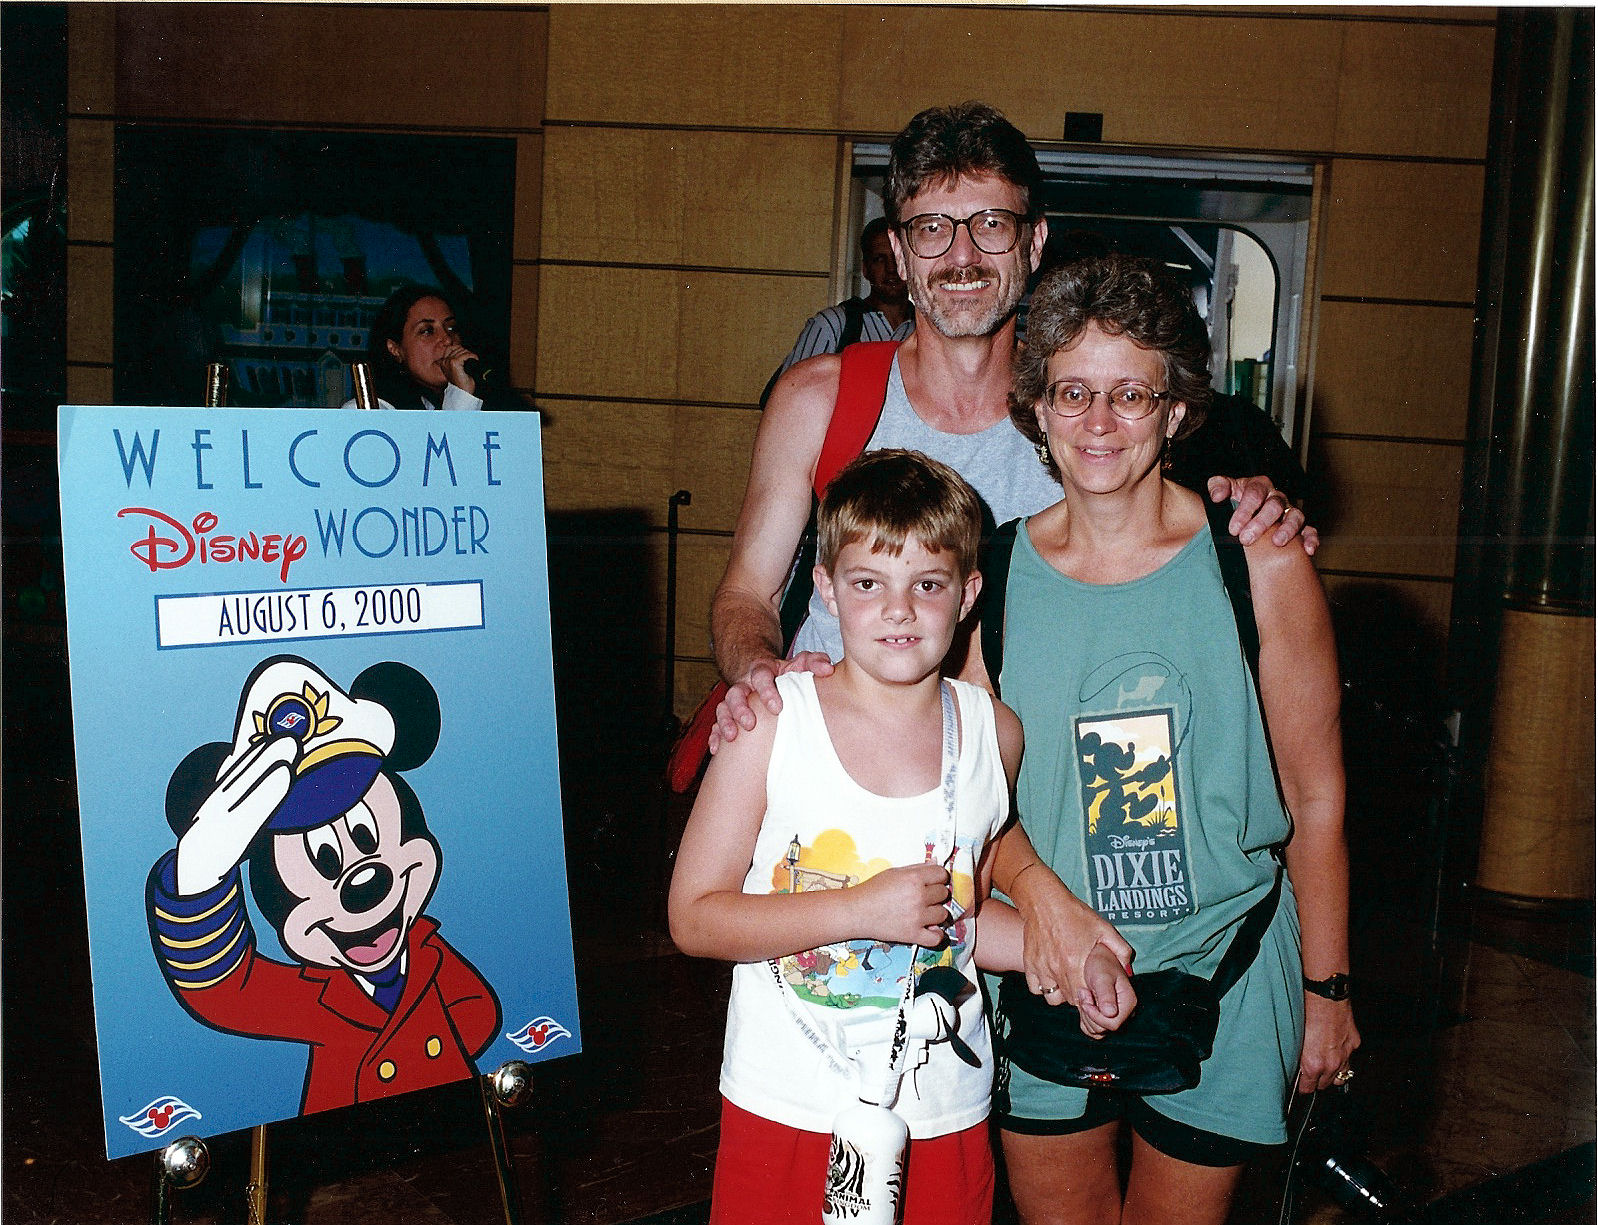 My parents and I just boarding the Disney Cruise Line's ship The Disney Wonder.